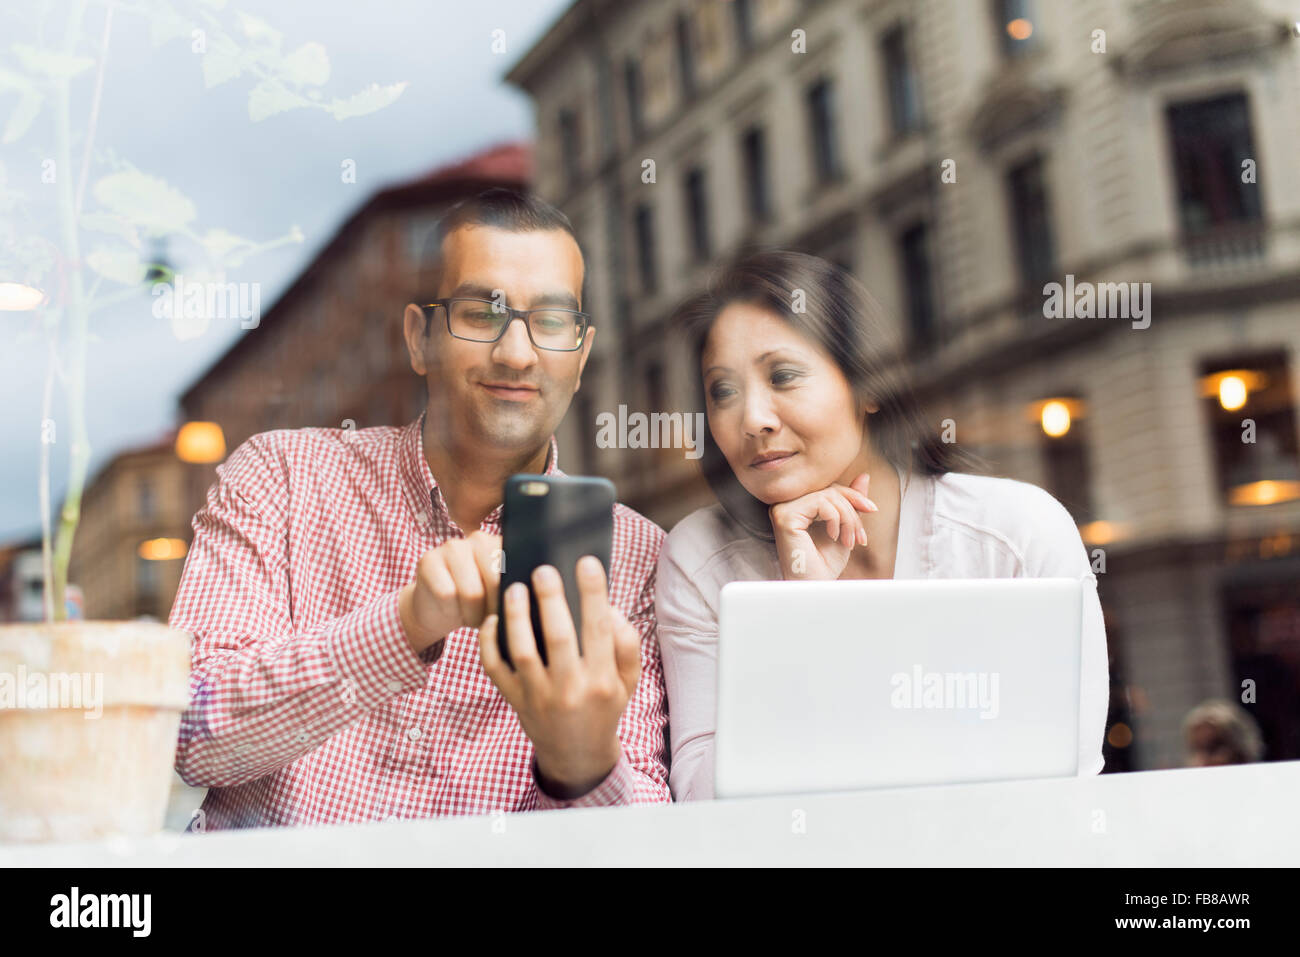 Sweden, Uppland, Stockholm, Man and woman using smart phone in cafe - Stock Image